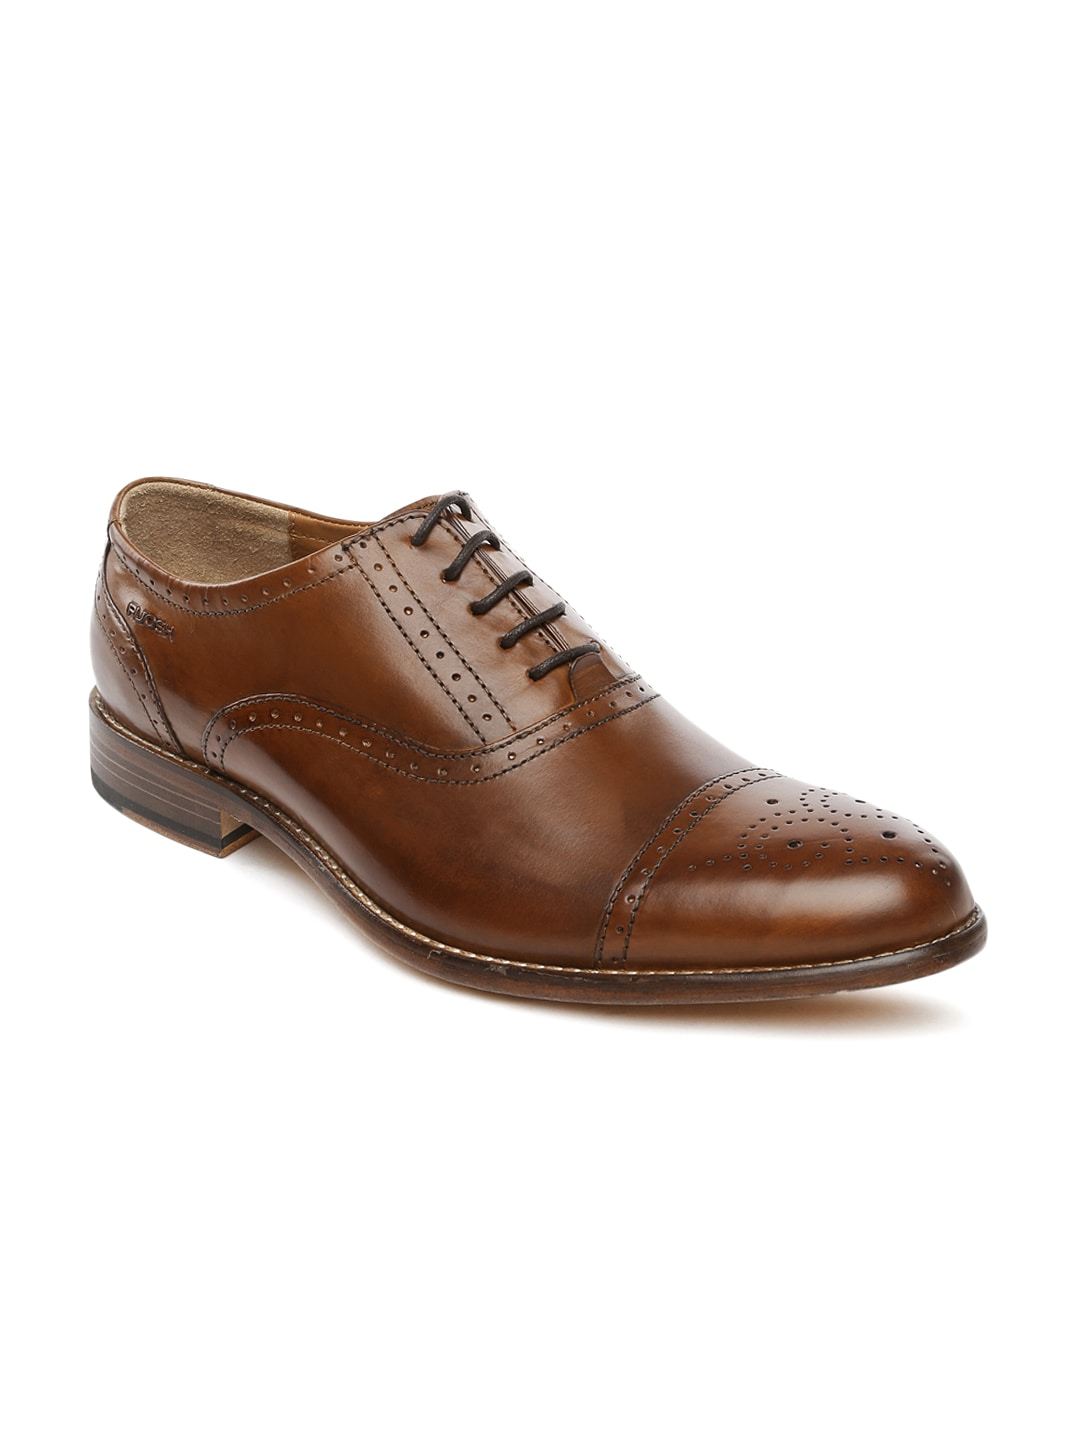 Ruosh Work Men Brown Leather Classic Oxford Shoes